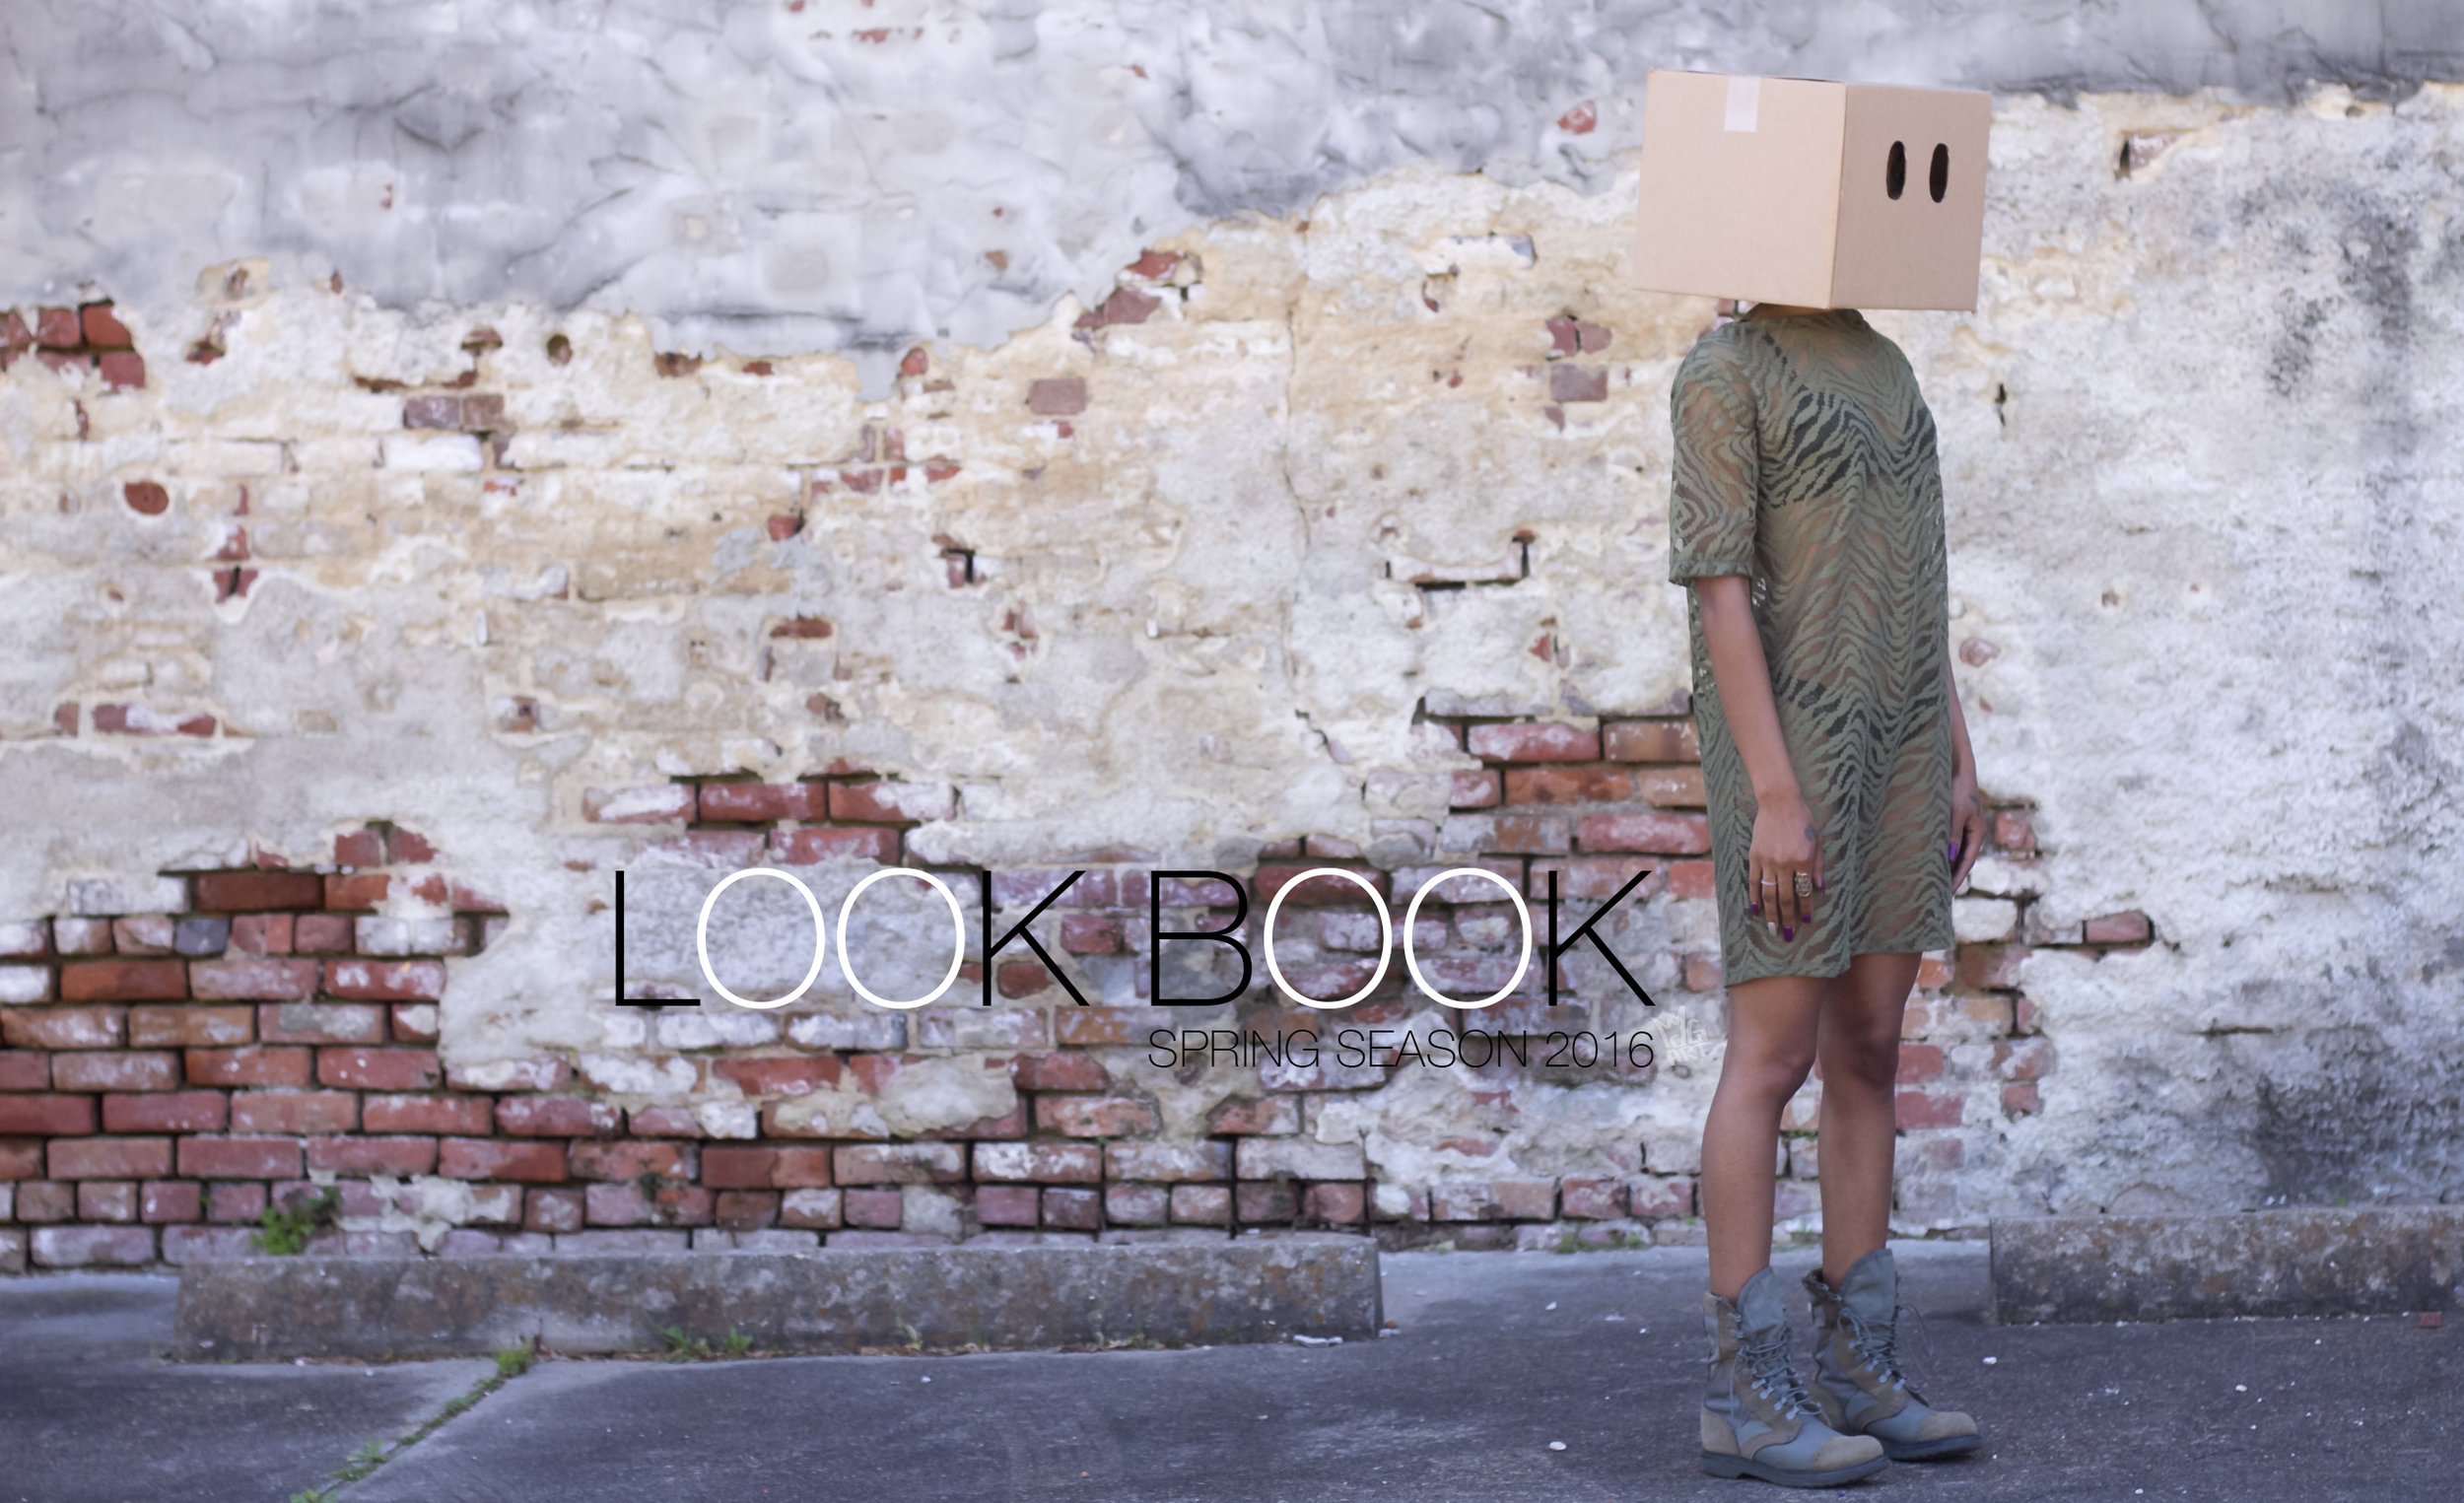 CHECK OUT VONRAY'S PREVIOUS LOOK BOOKS - NEW SEASON COMING SOON